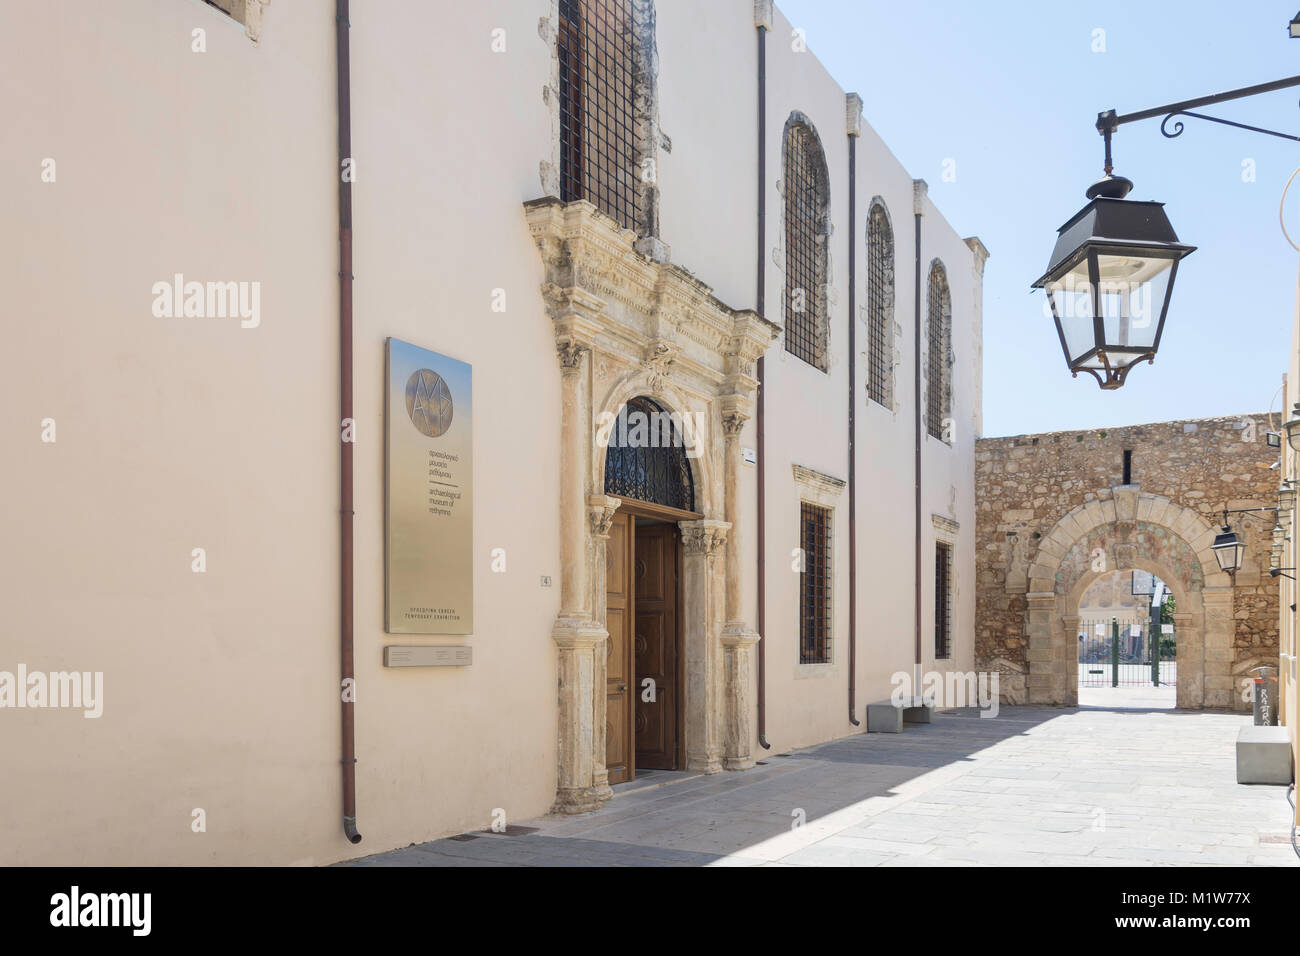 Entrance to Archaelogical Museum of Rethymno, Old Town, Rethymnon (Rethimno), Rethimno Region, Crete (Kriti), Greece - Stock Image